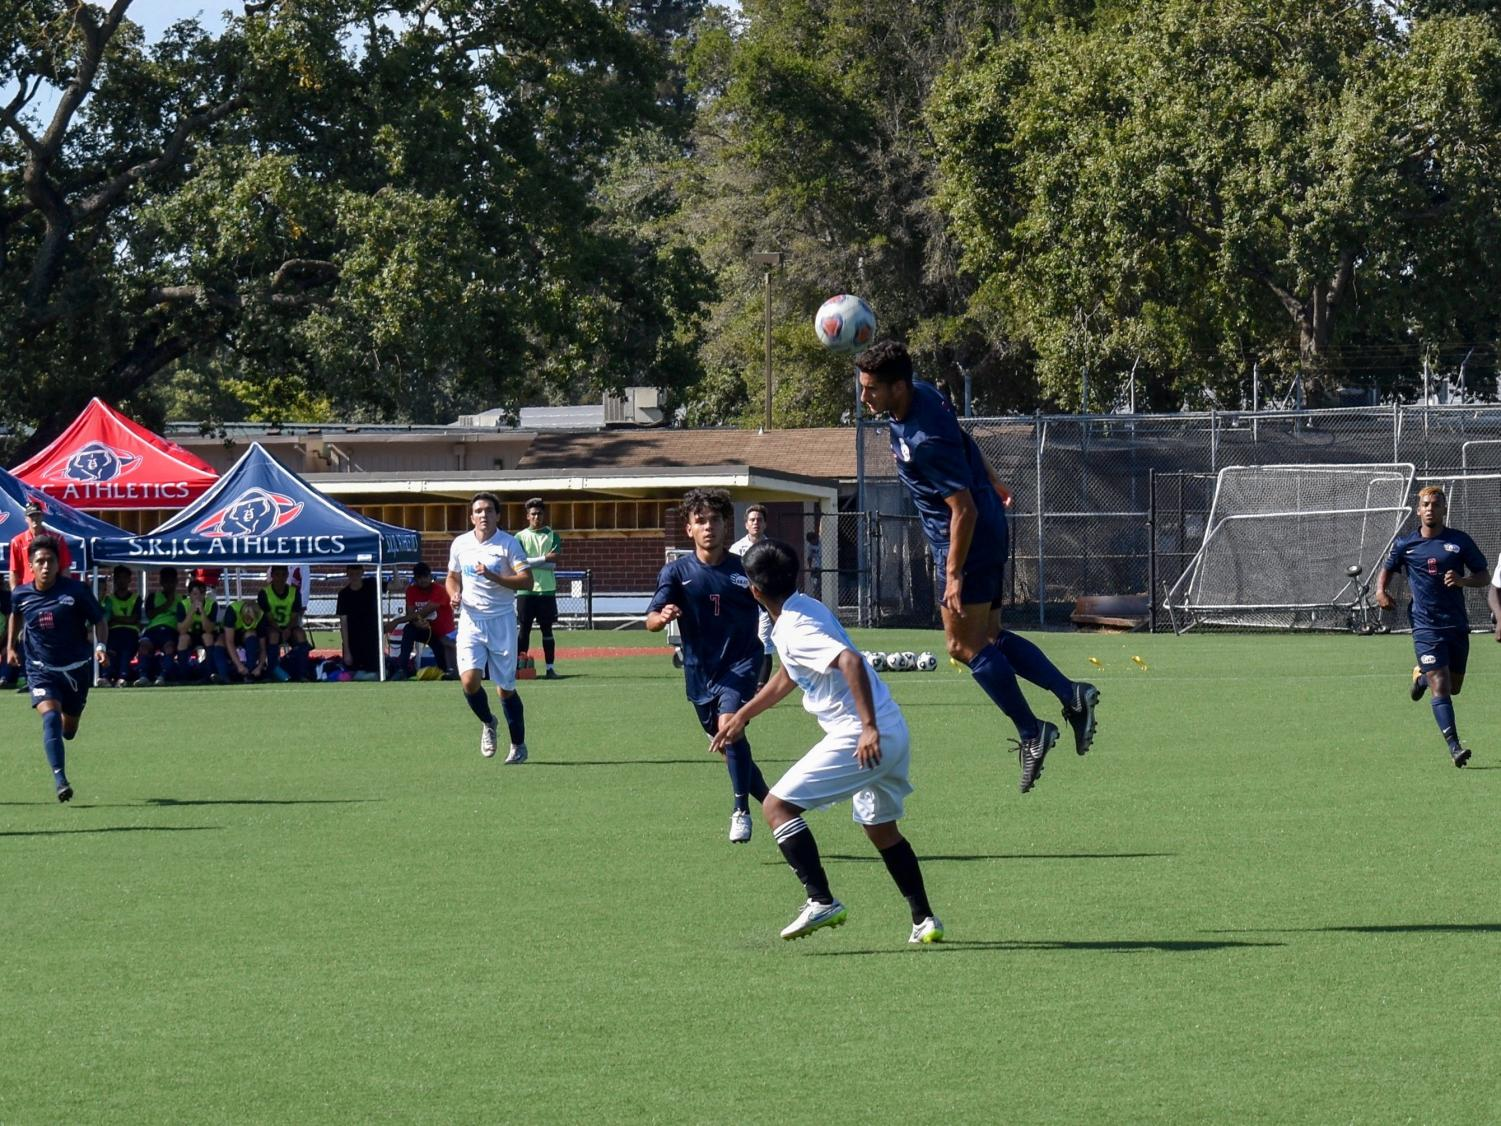 SRJC defenseman Matias Gomez goes up for a header in the first half of Wednesday's home opener versus Contra Costa. The Bear Cubs trounced their opponent 12-0.